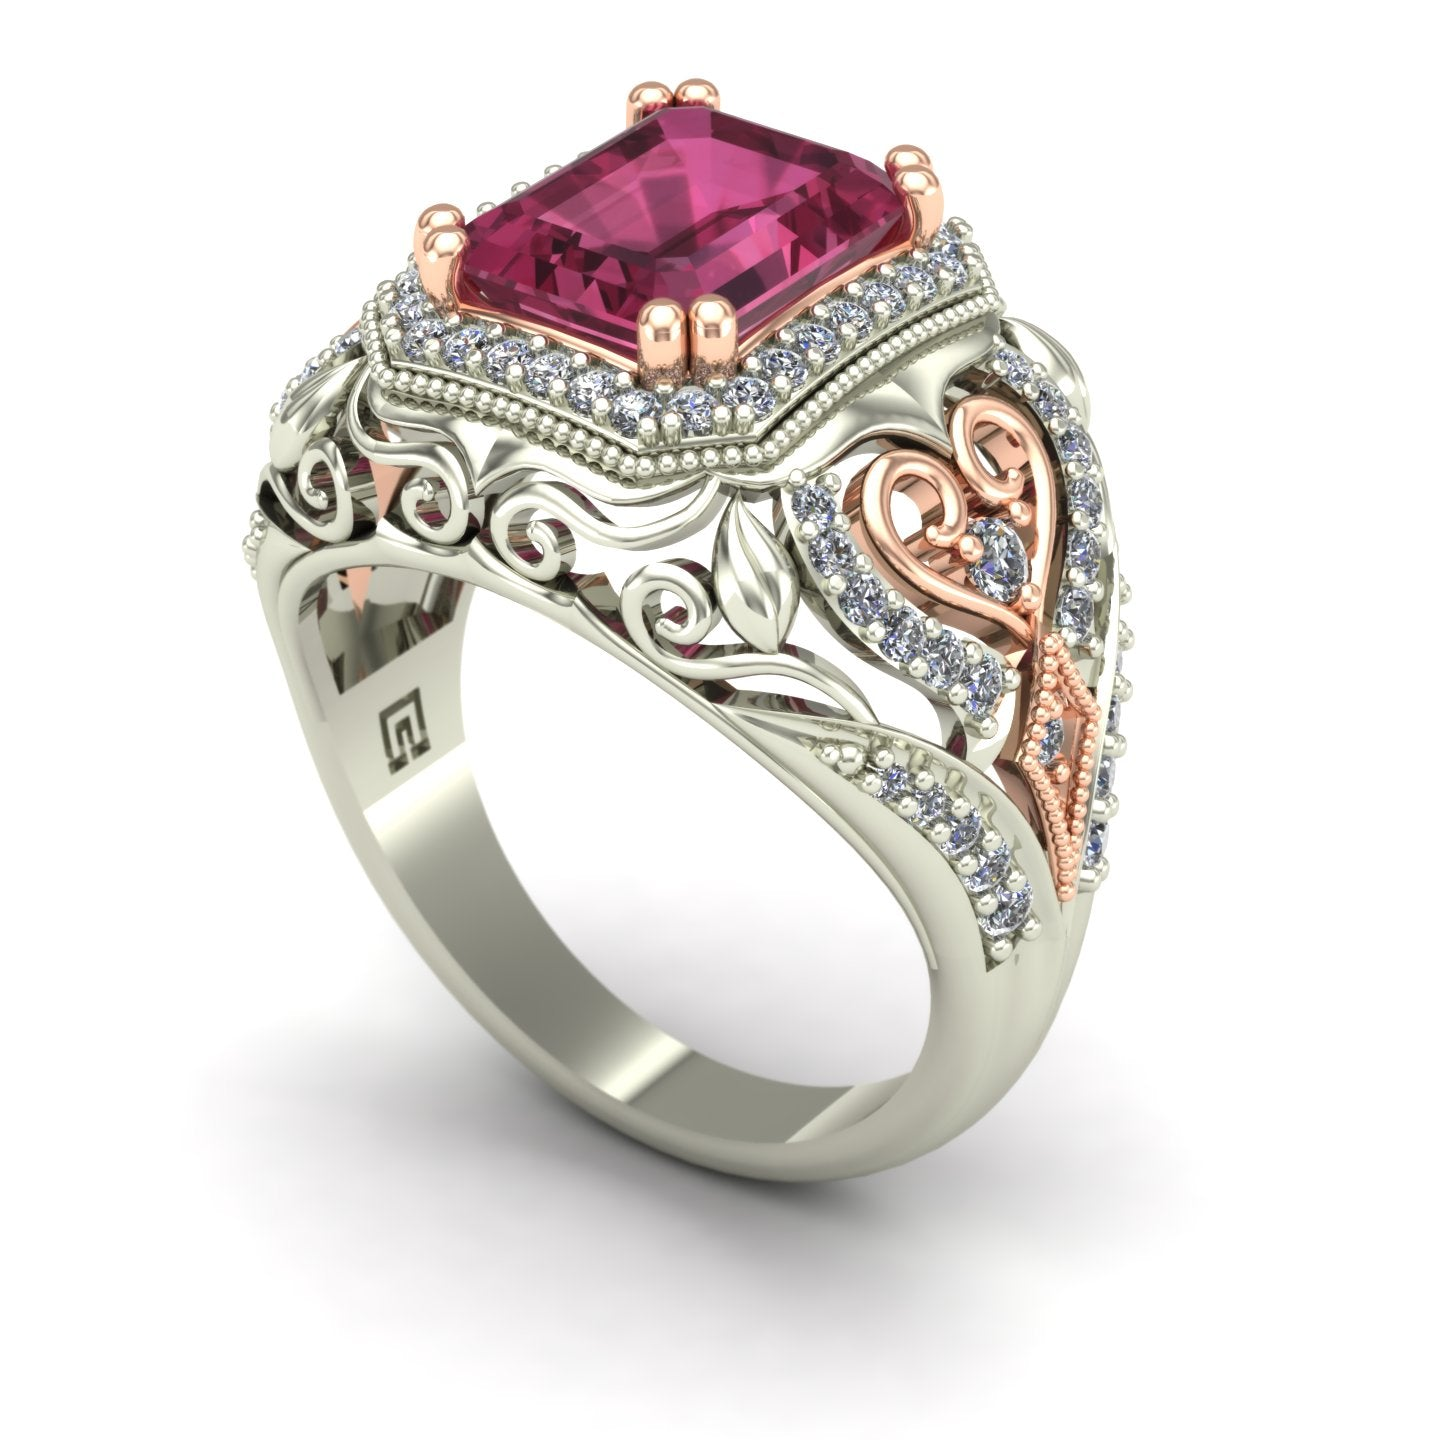 Pink tourmaline and diamond dome ring in 14k white and rose gold